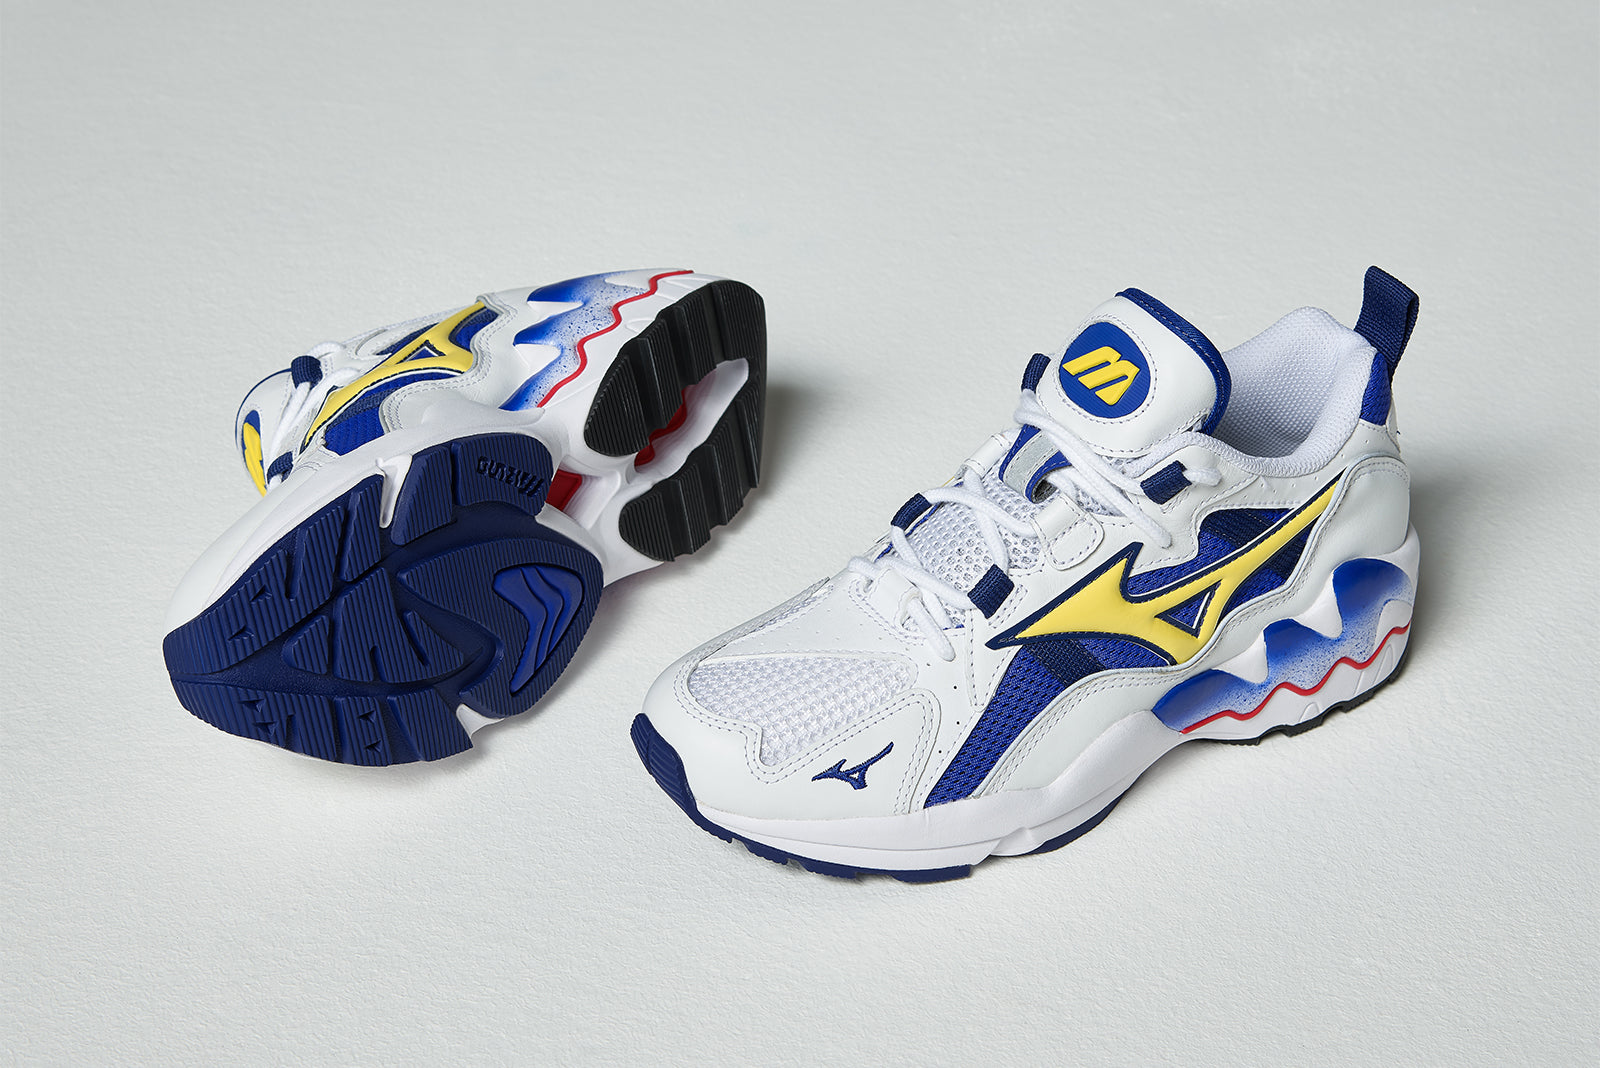 Mizuno Wave Rider 1 OG D1GA182527 WHITE BLUE YELLOW Price  £139.00. Launch   Friday 23rd of November ONLINE  23 00GMT   IN-STORE  Saturday 24th November  from ... d99587b2adc02